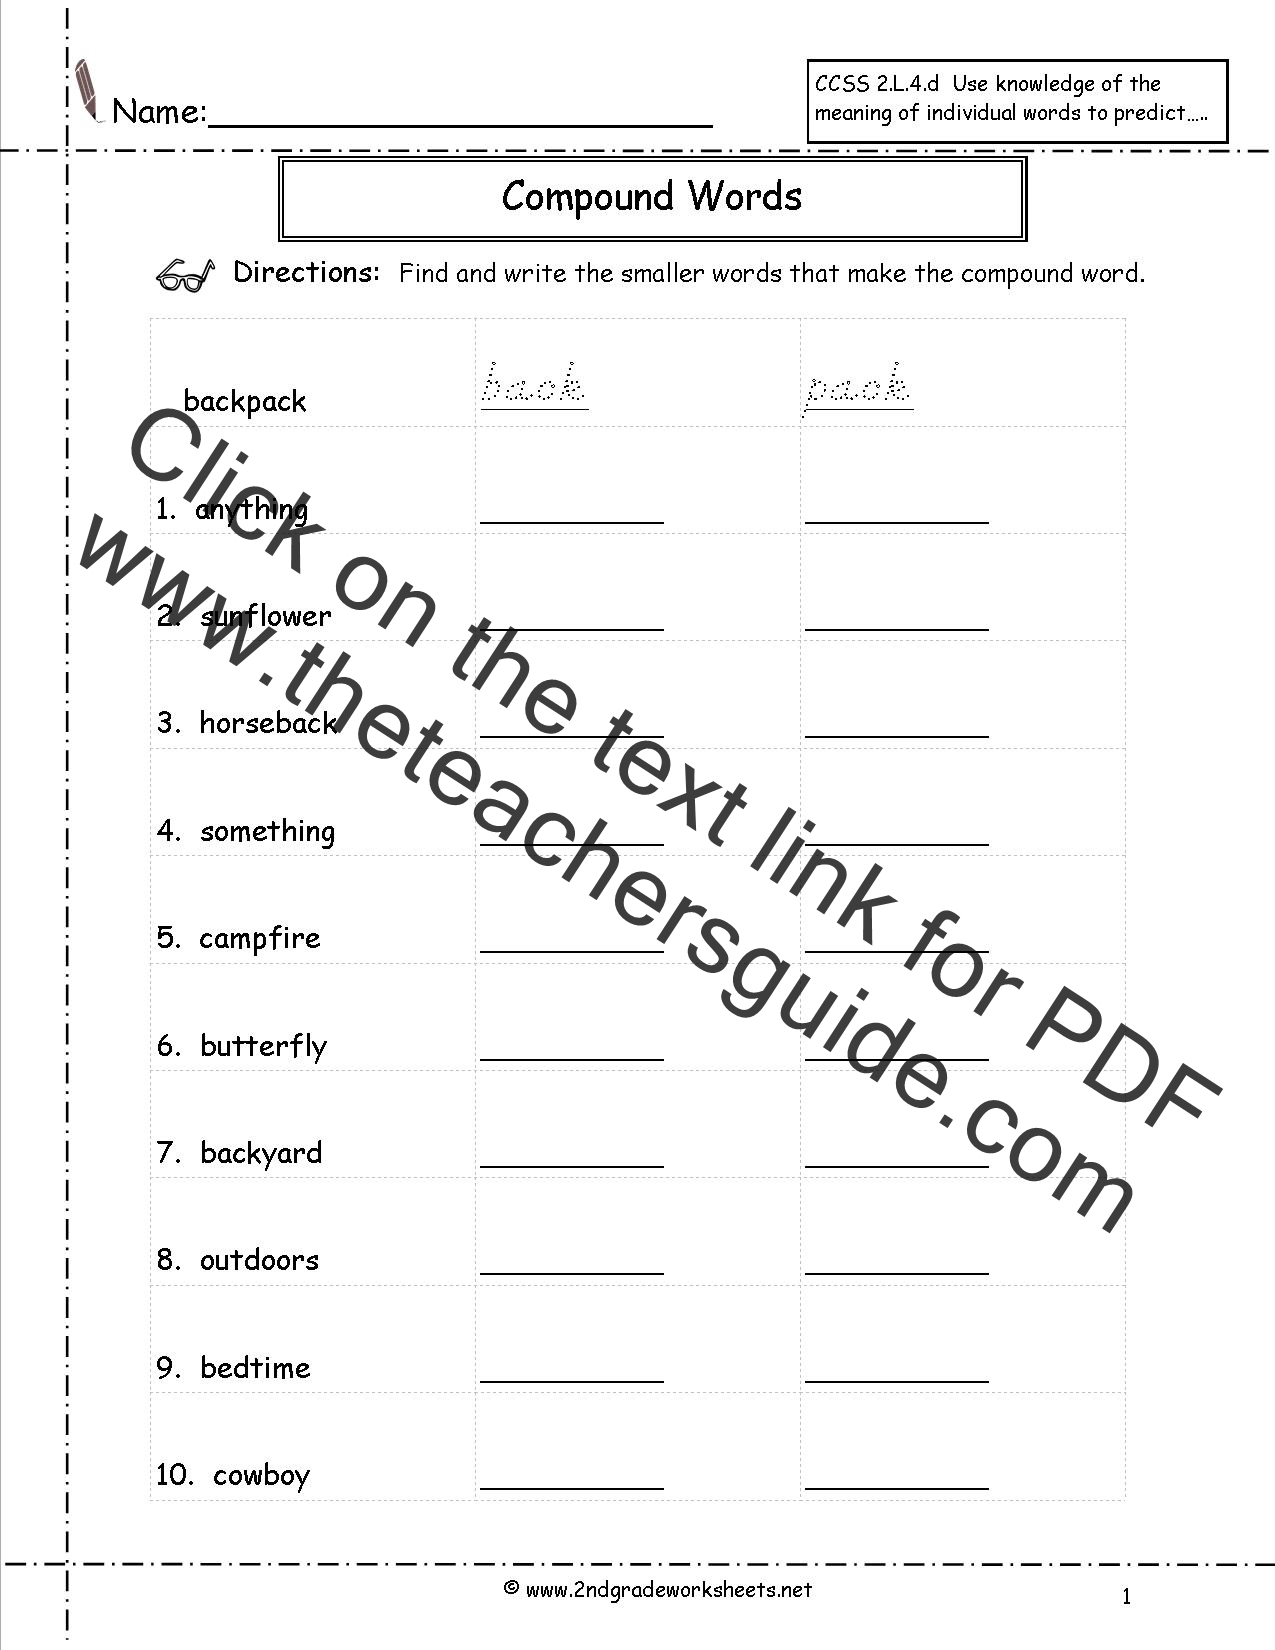 Free Worksheet Grammar Worksheets Second Grade free languagegrammar worksheets and printouts compound words worksheets